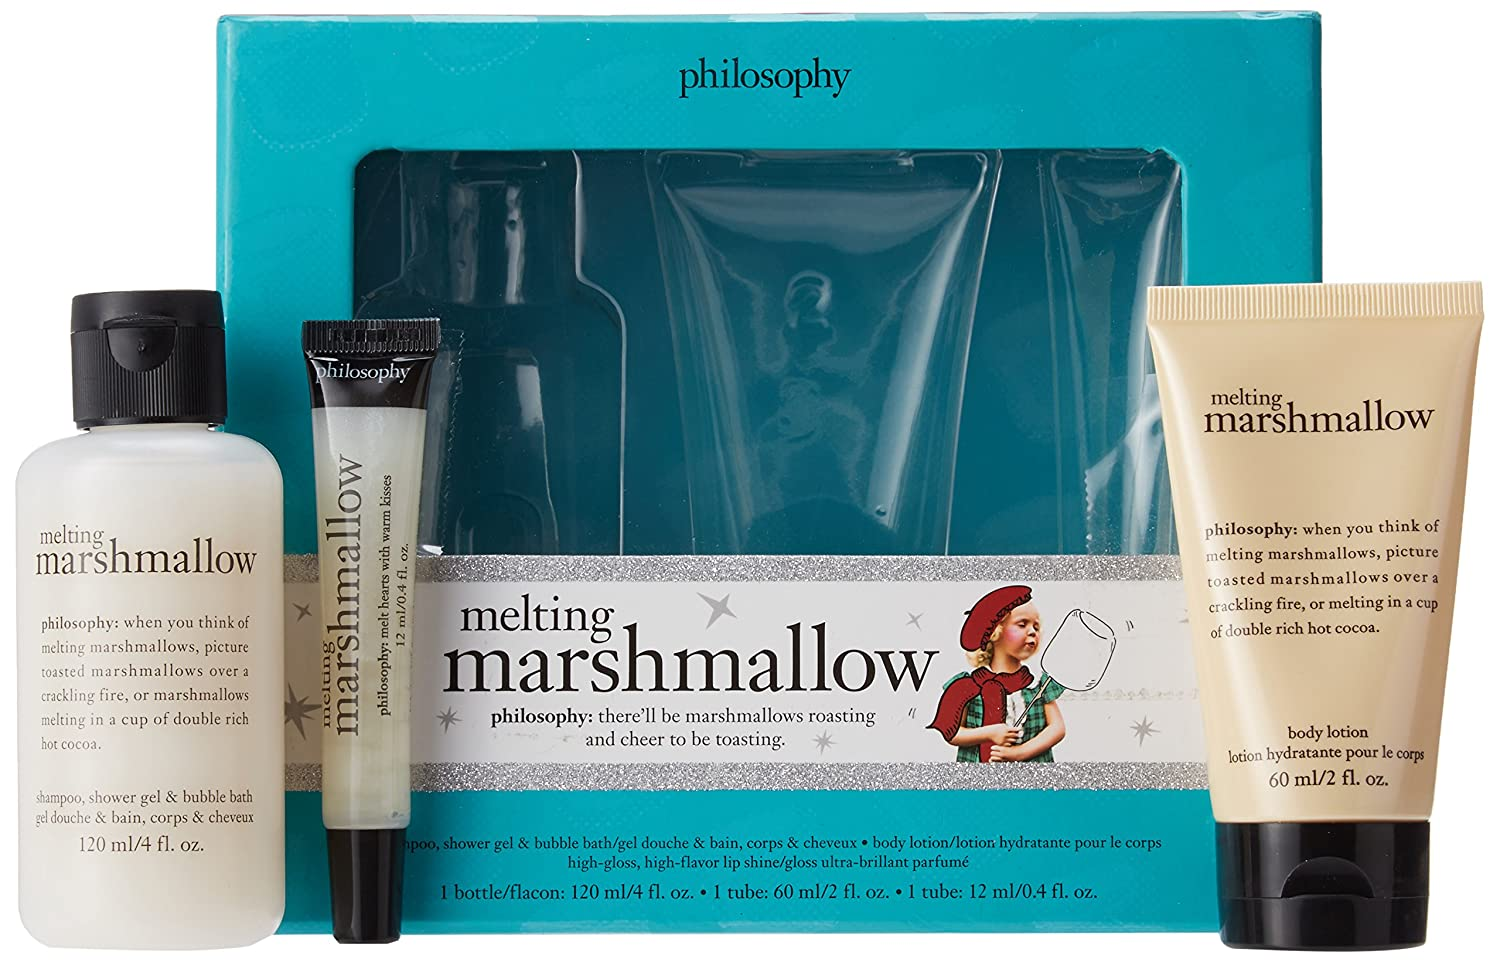 Amazon.com : Philosophy Melting Marshmallow Trio Gift Set - Shower Gel, Body Lotion and Gloss : Beauty